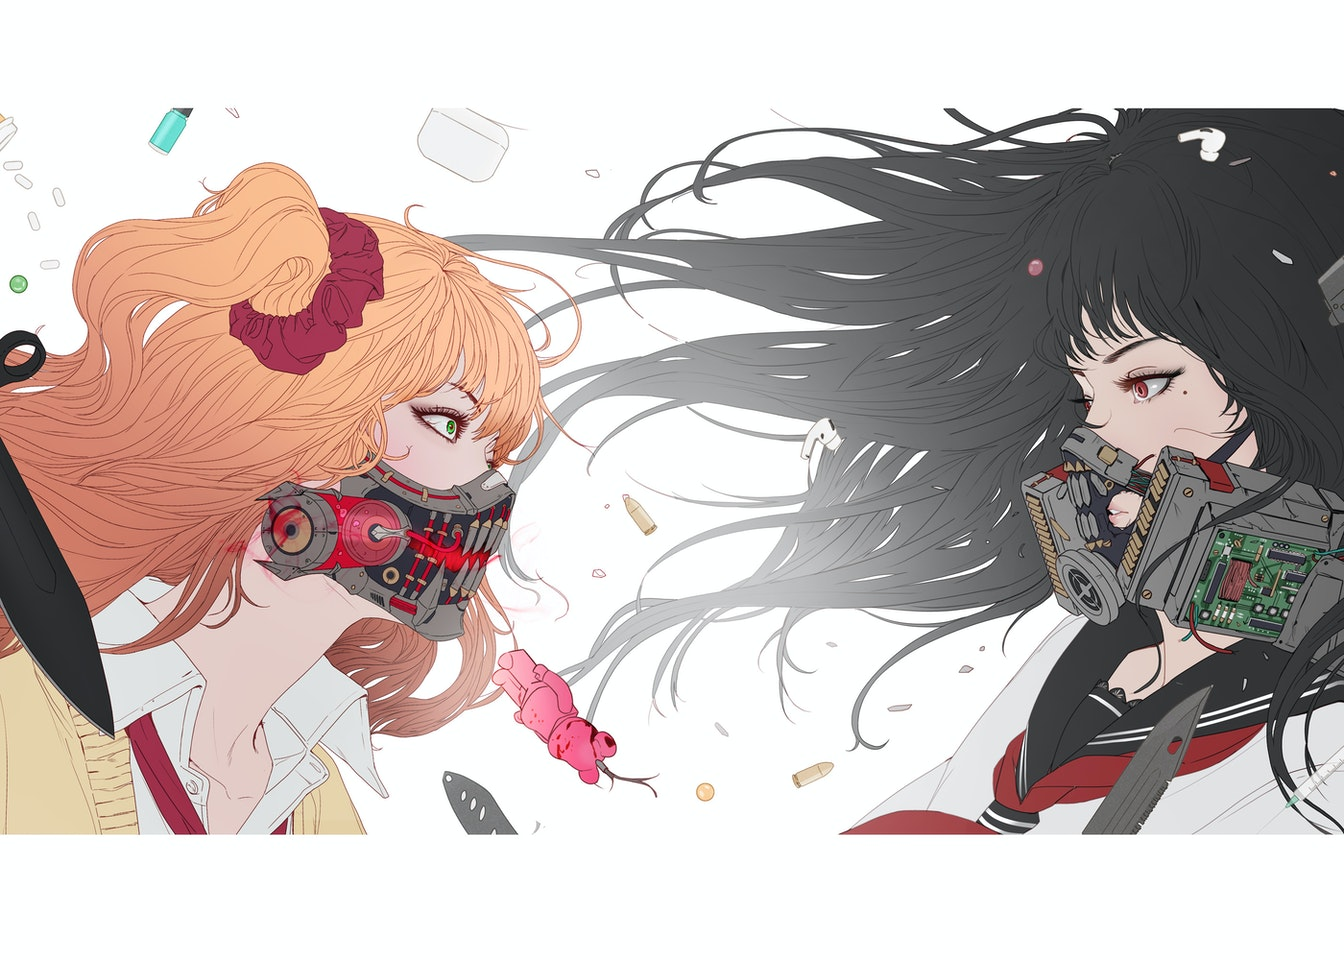 The Girls of Armament